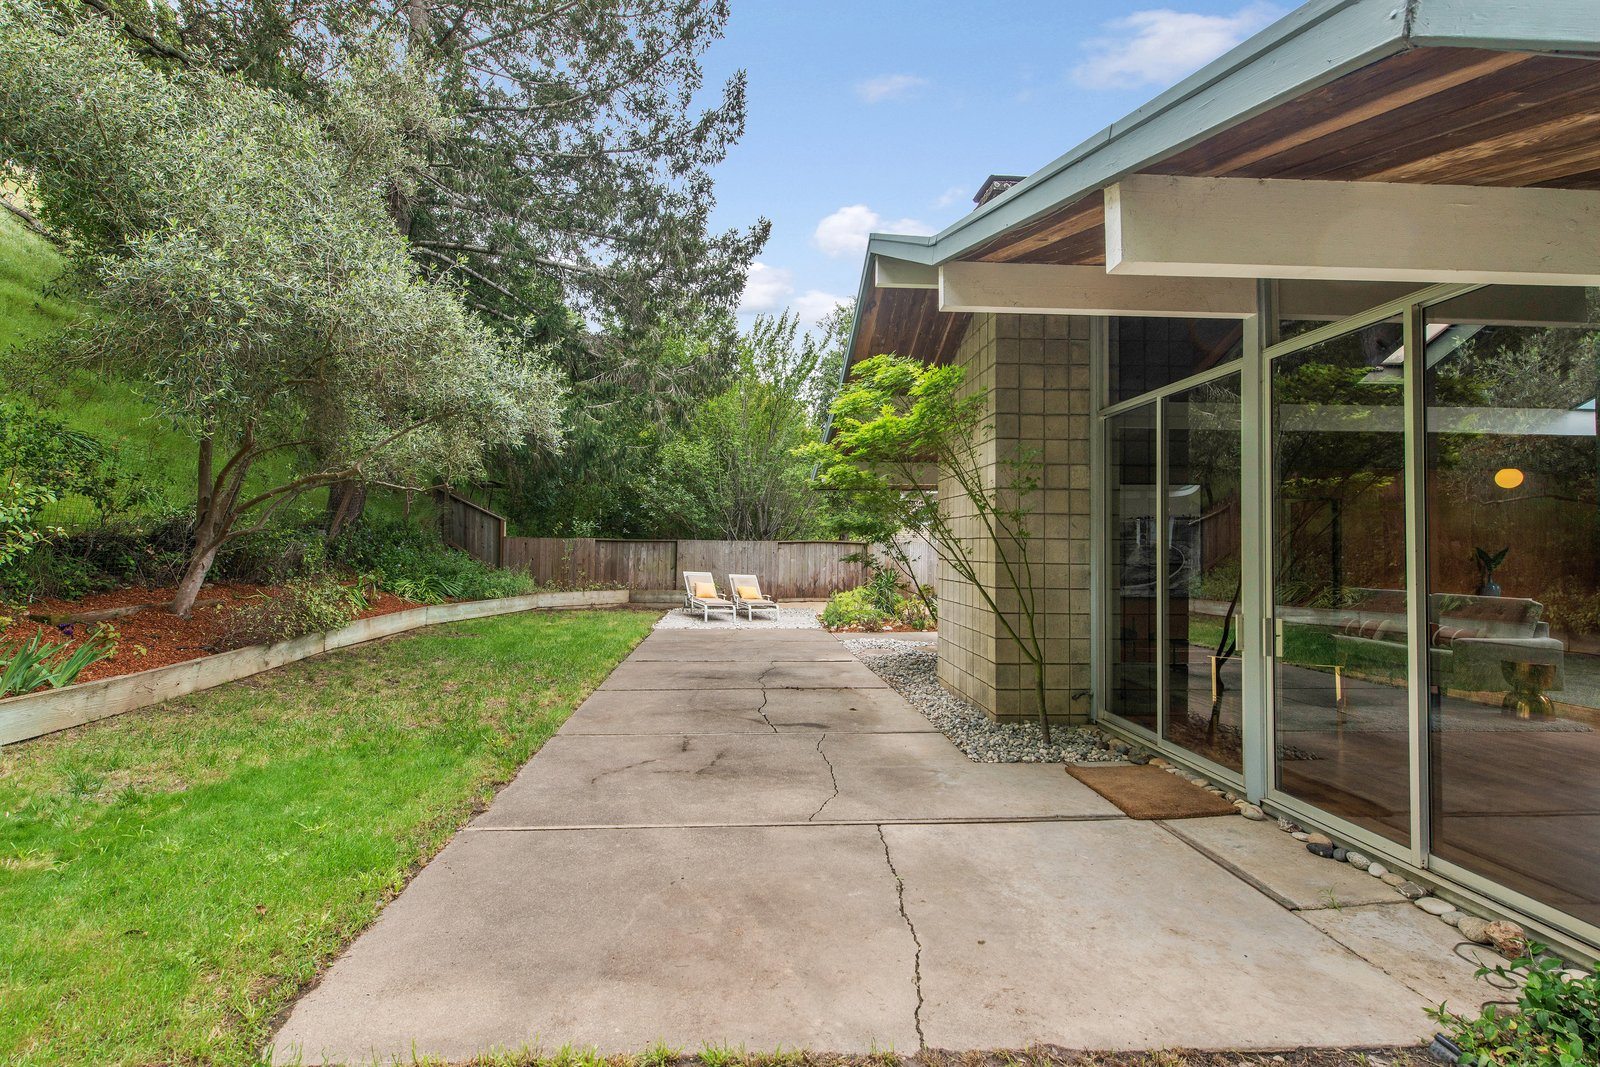 Outdoor, Trees, Concrete Patio, Porch, Deck, Large Patio, Porch, Deck, Back Yard, Grass, Gardens, Horizontal Fences, Wall, and Wood Fences, Wall The backyard has lots of potential for outdoor entertaining.    Photo 12 of 14 in Live Large in This Extra-Spacious Eichler That's Asking $1.38M